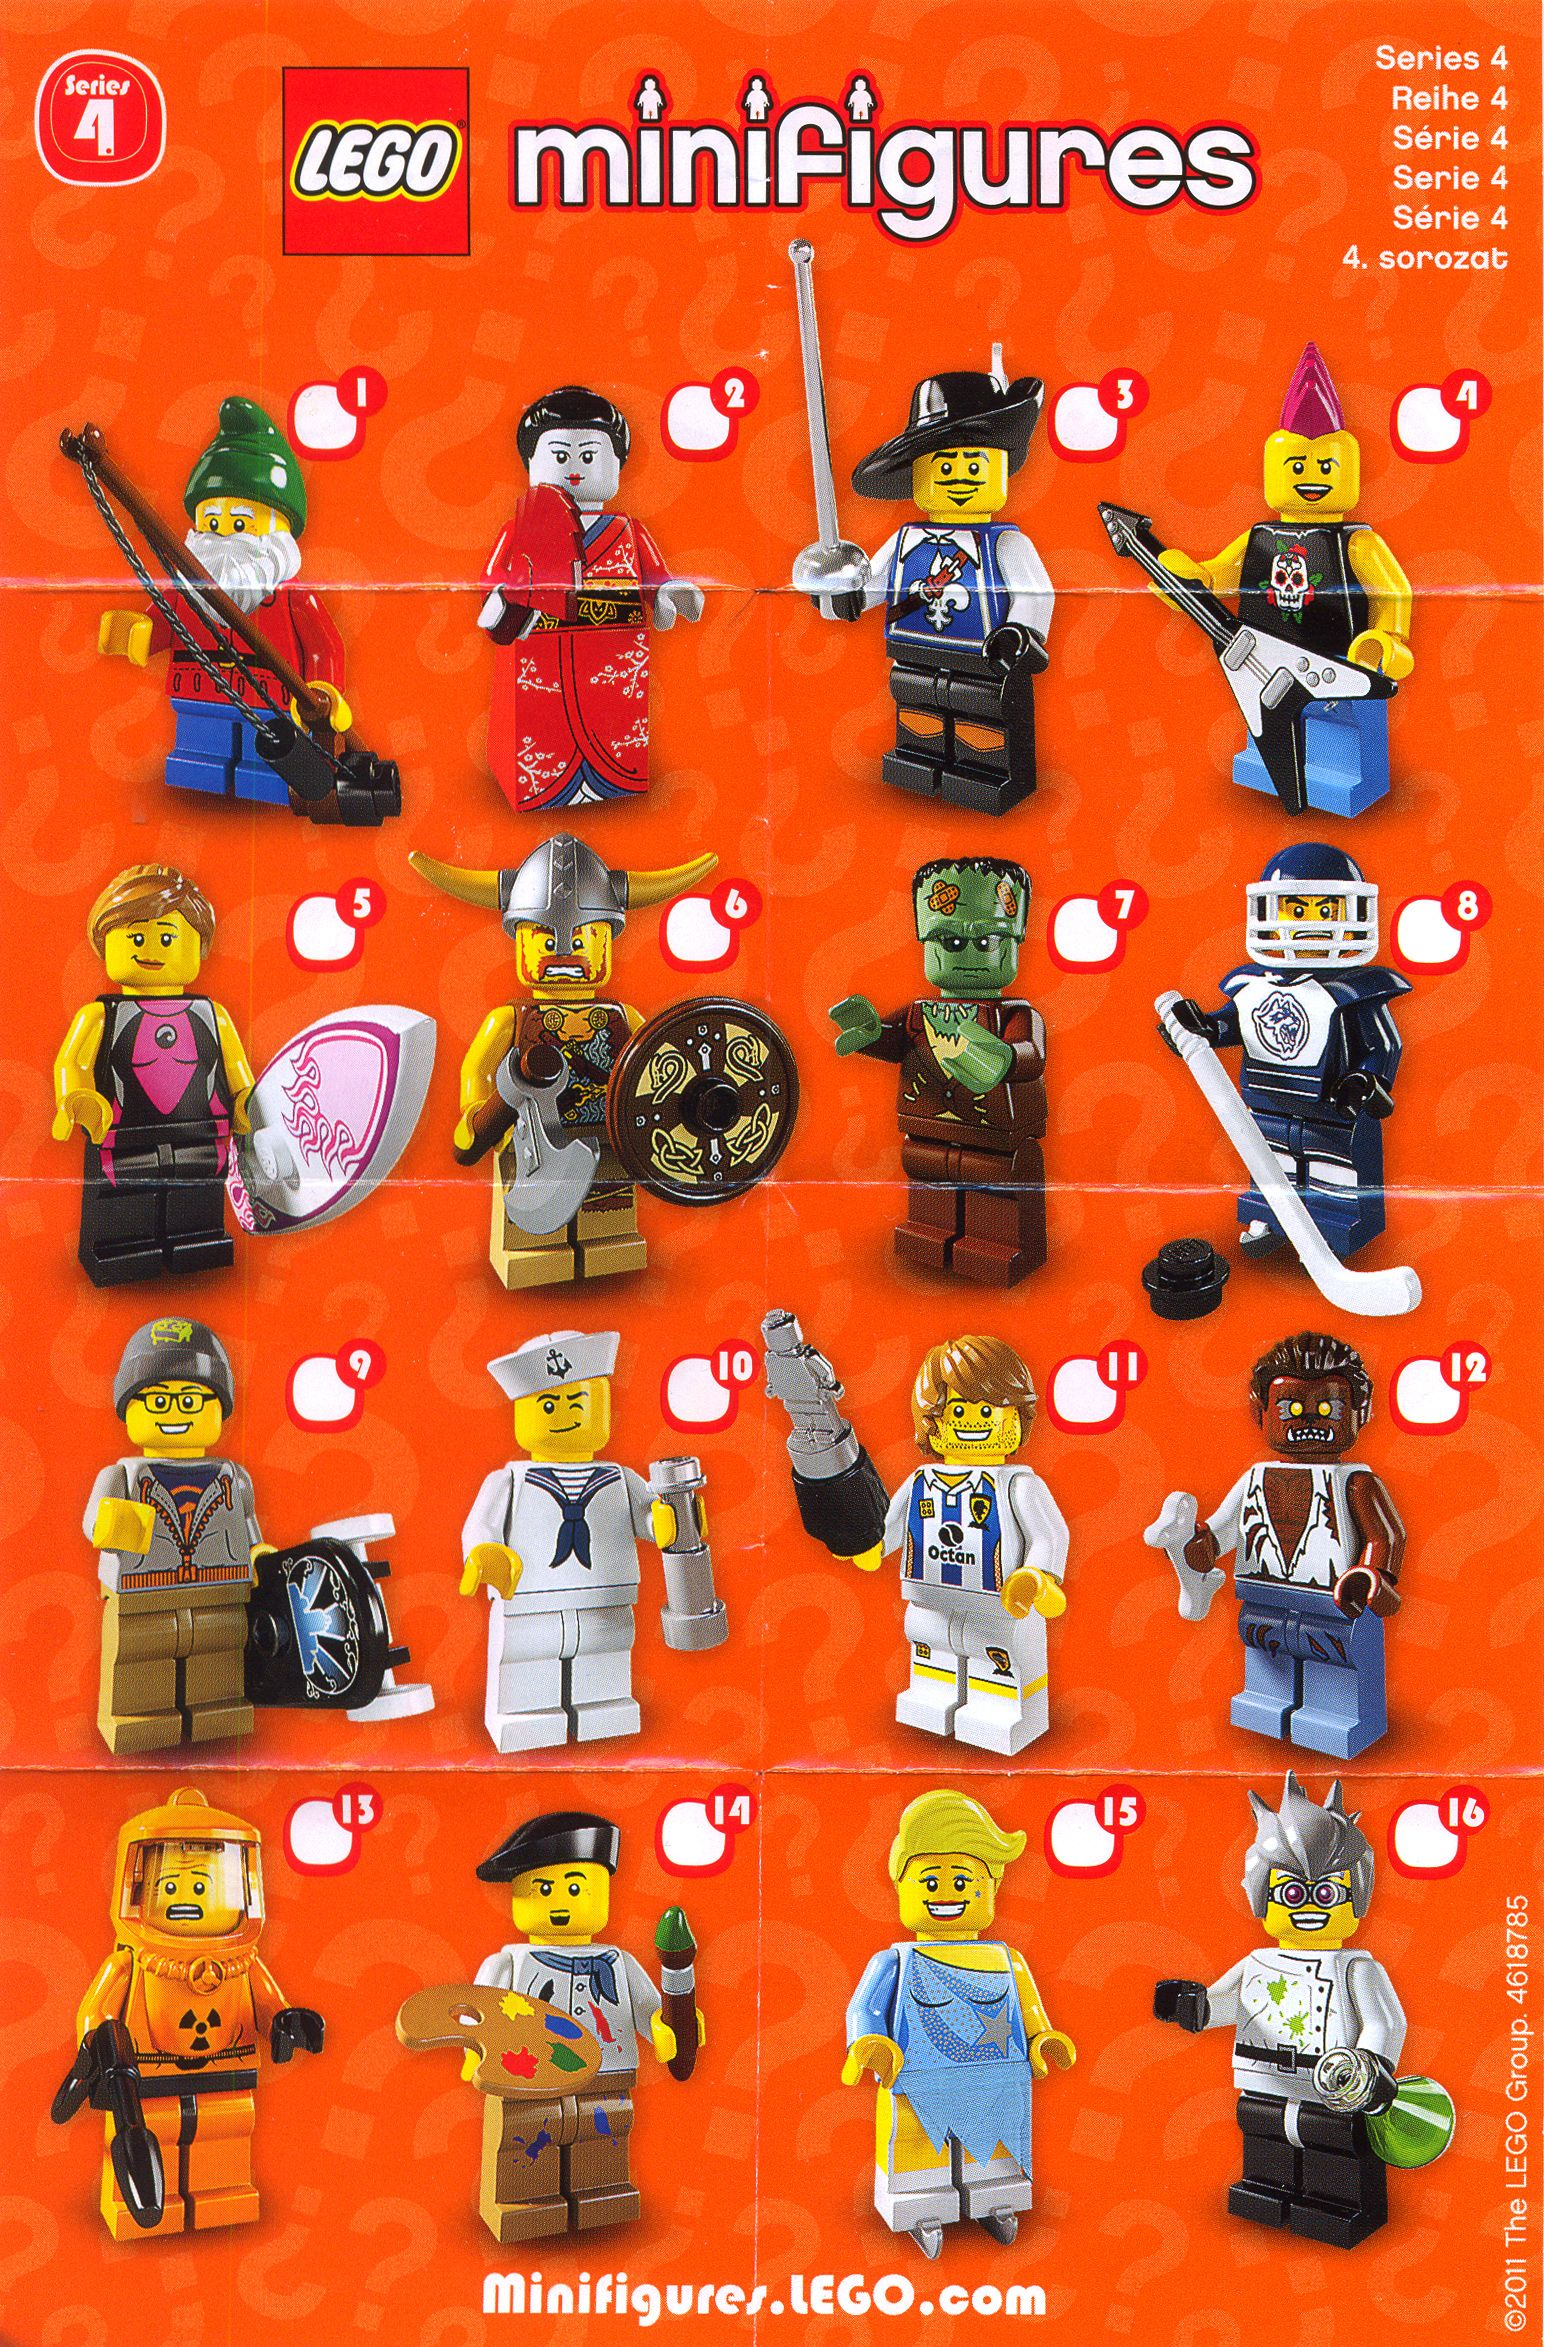 LEGO Disney Minifigures Coming LEGO Disney Pinterest - 16 imaginative lego ads that celebrate the power of fantasy 2